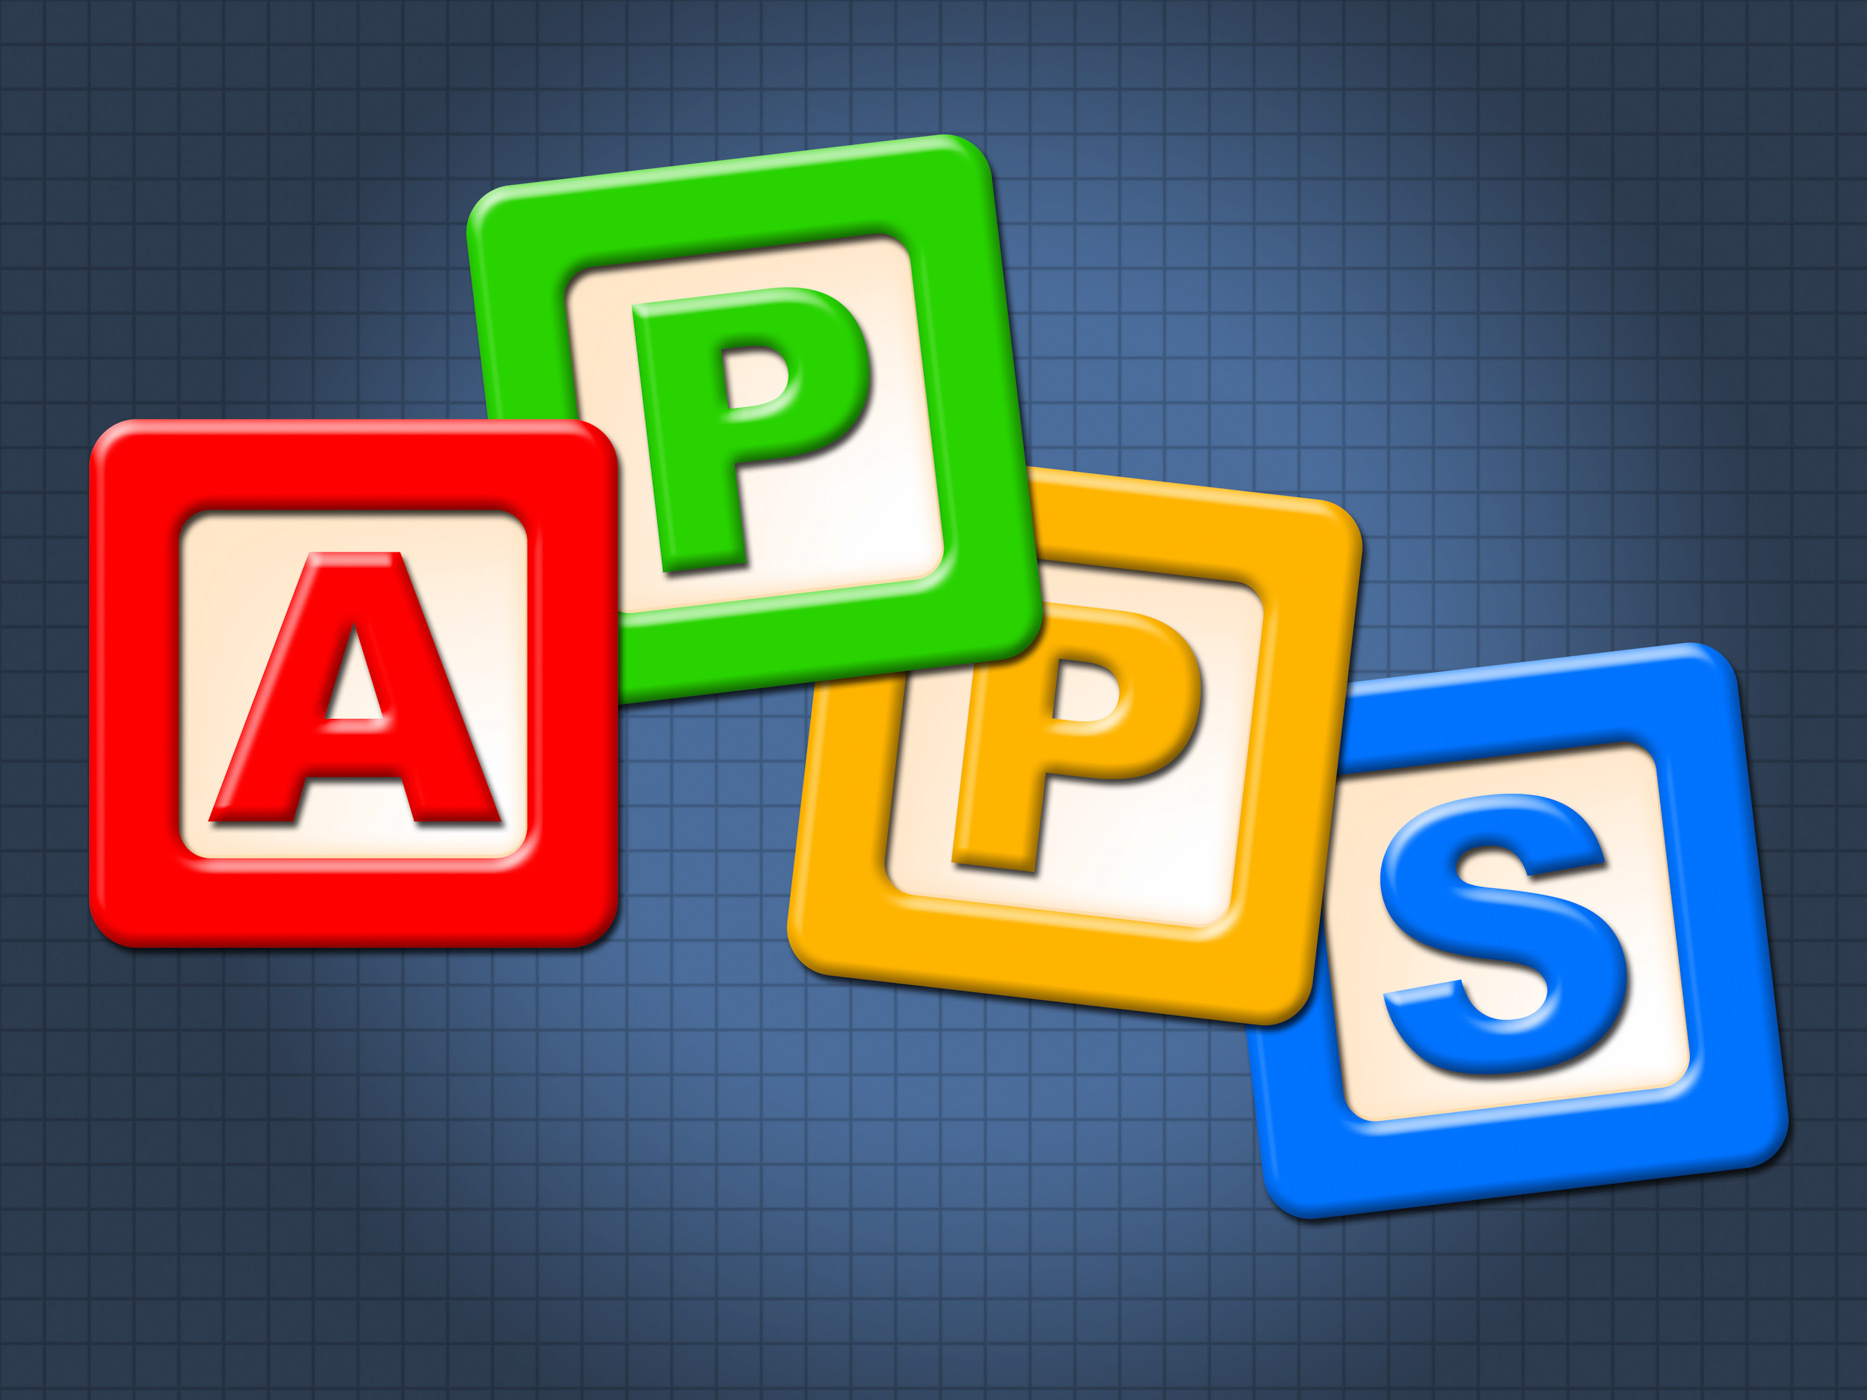 Apps Kids Blocks Shows Application Software And Computing, App, Kid, Youth, Youngsters, HQ Photo